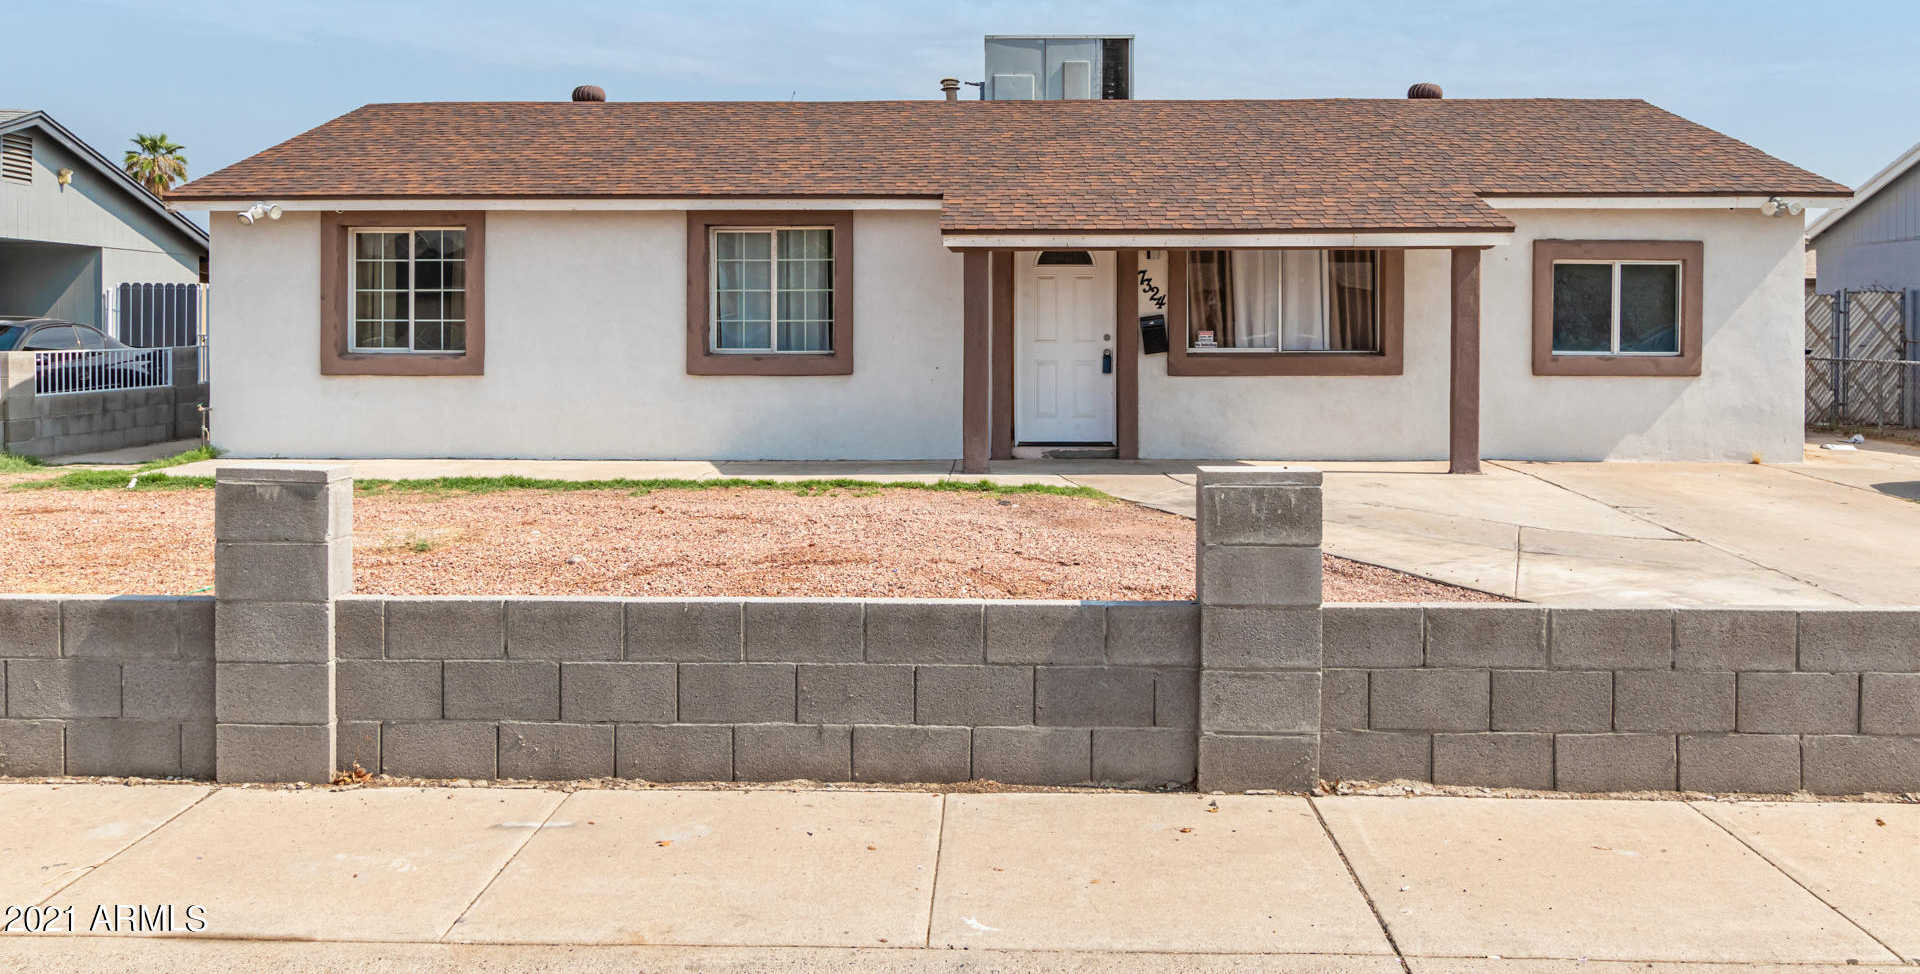 $350,000 - 5Br/3Ba - Home for Sale in Maryvale Terrace No. 35 West, Phoenix